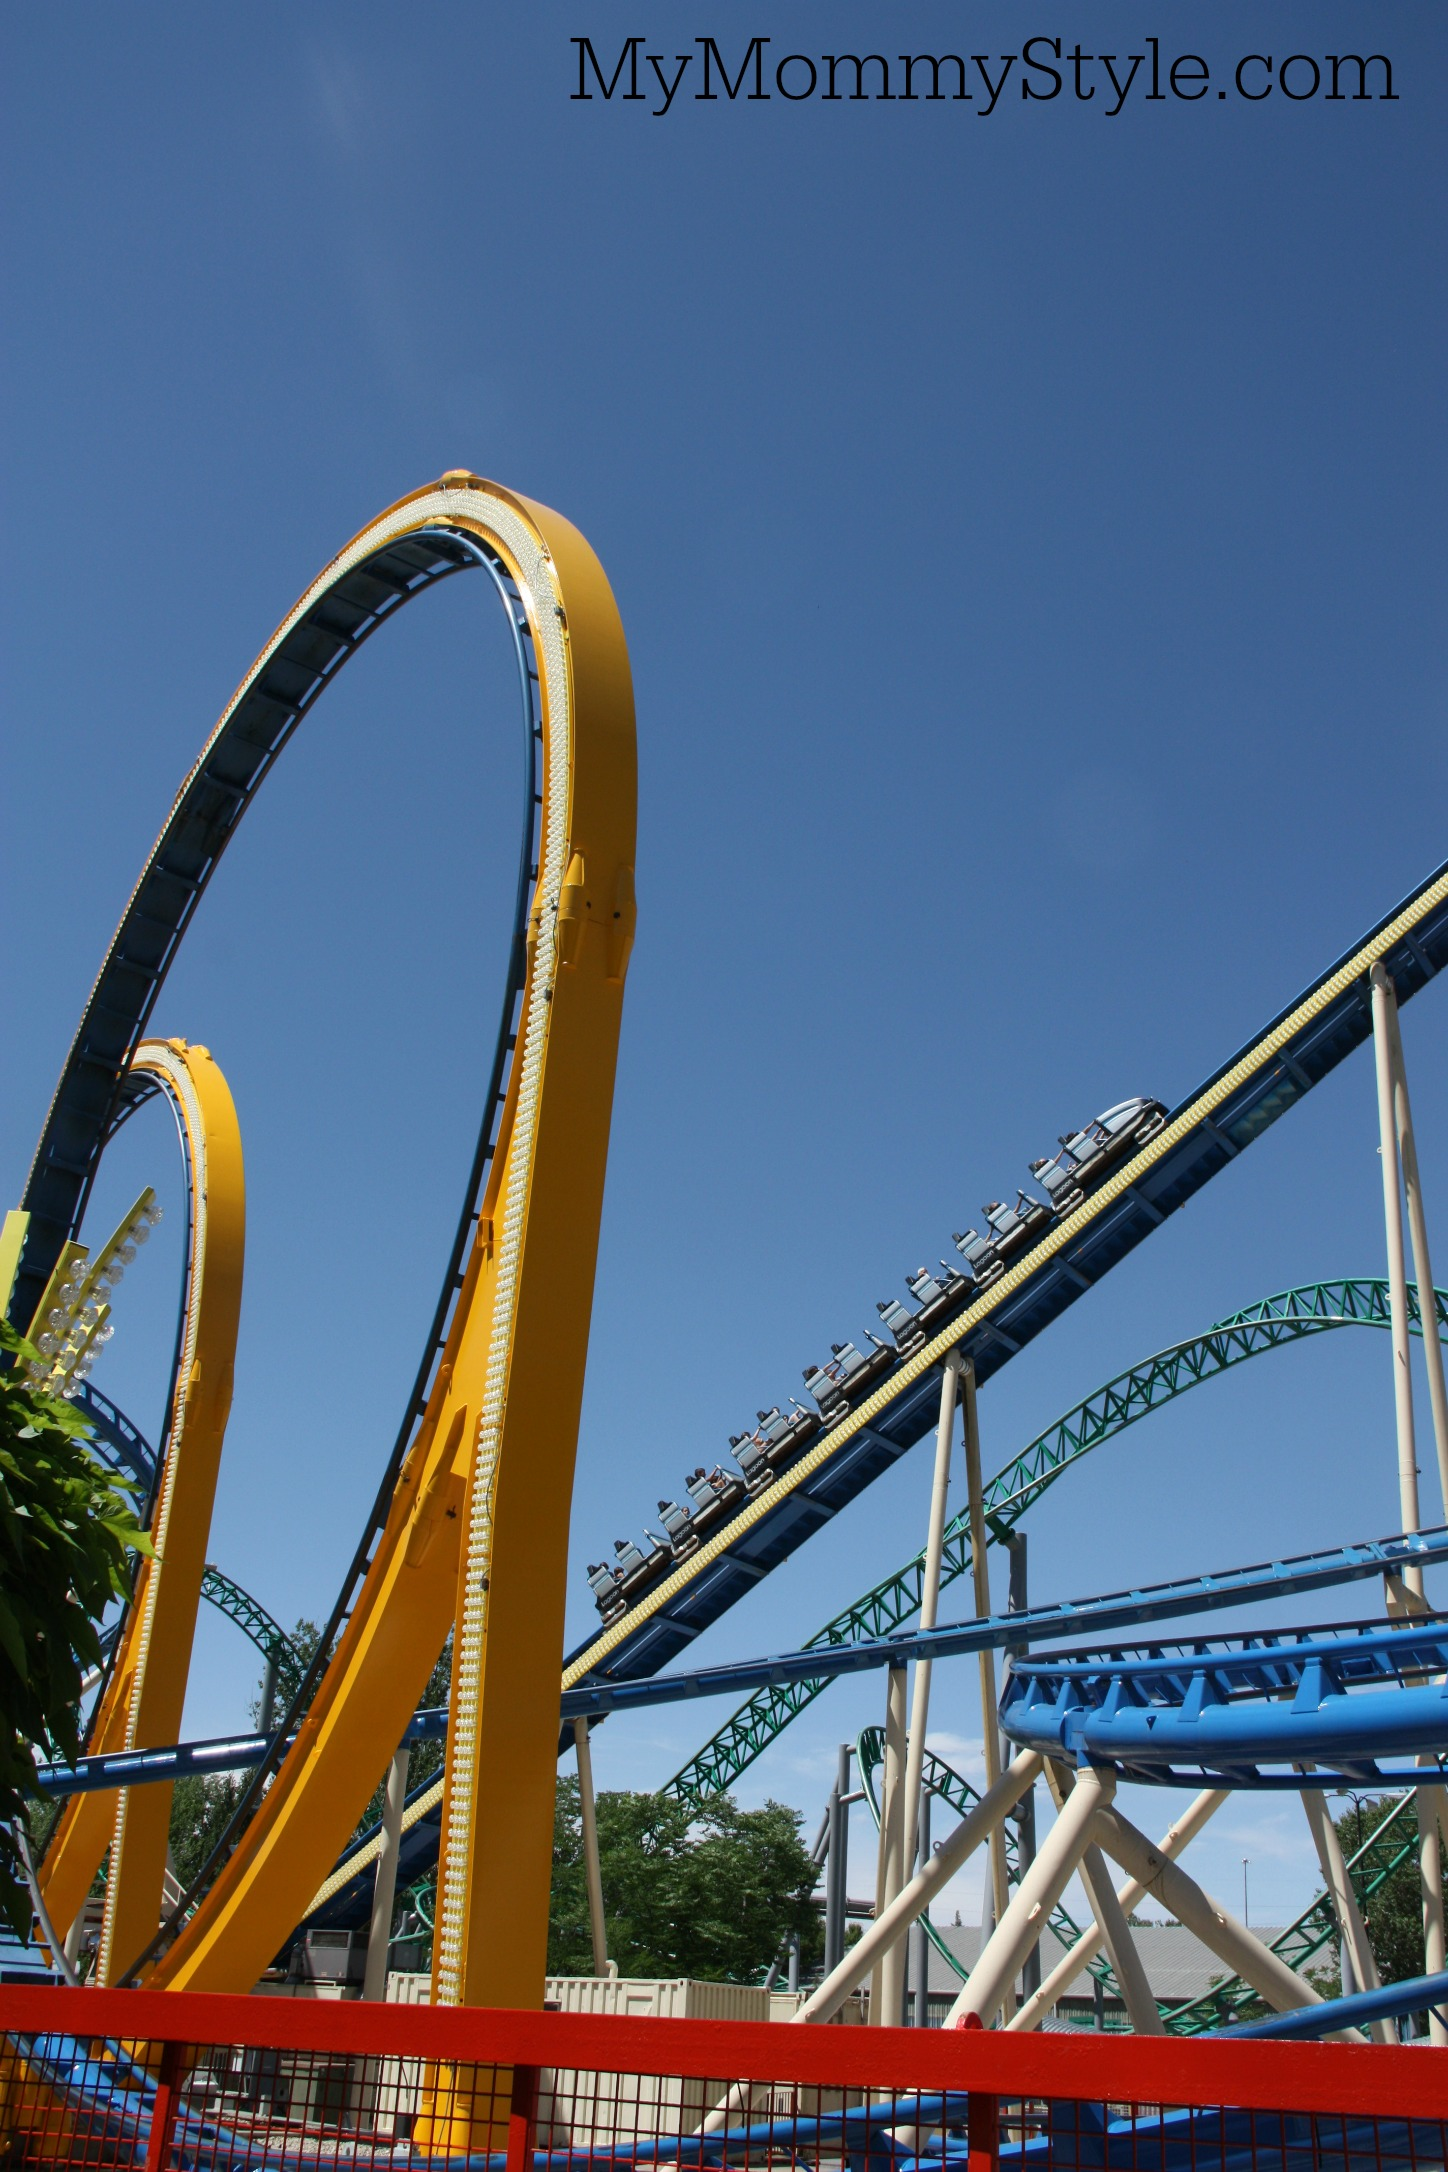 How Roller Coasters Work Howstuffworks Force Analysis Of A Coaster Diagram Kingda Ka Related Keywords Suggestions Rollercoasters